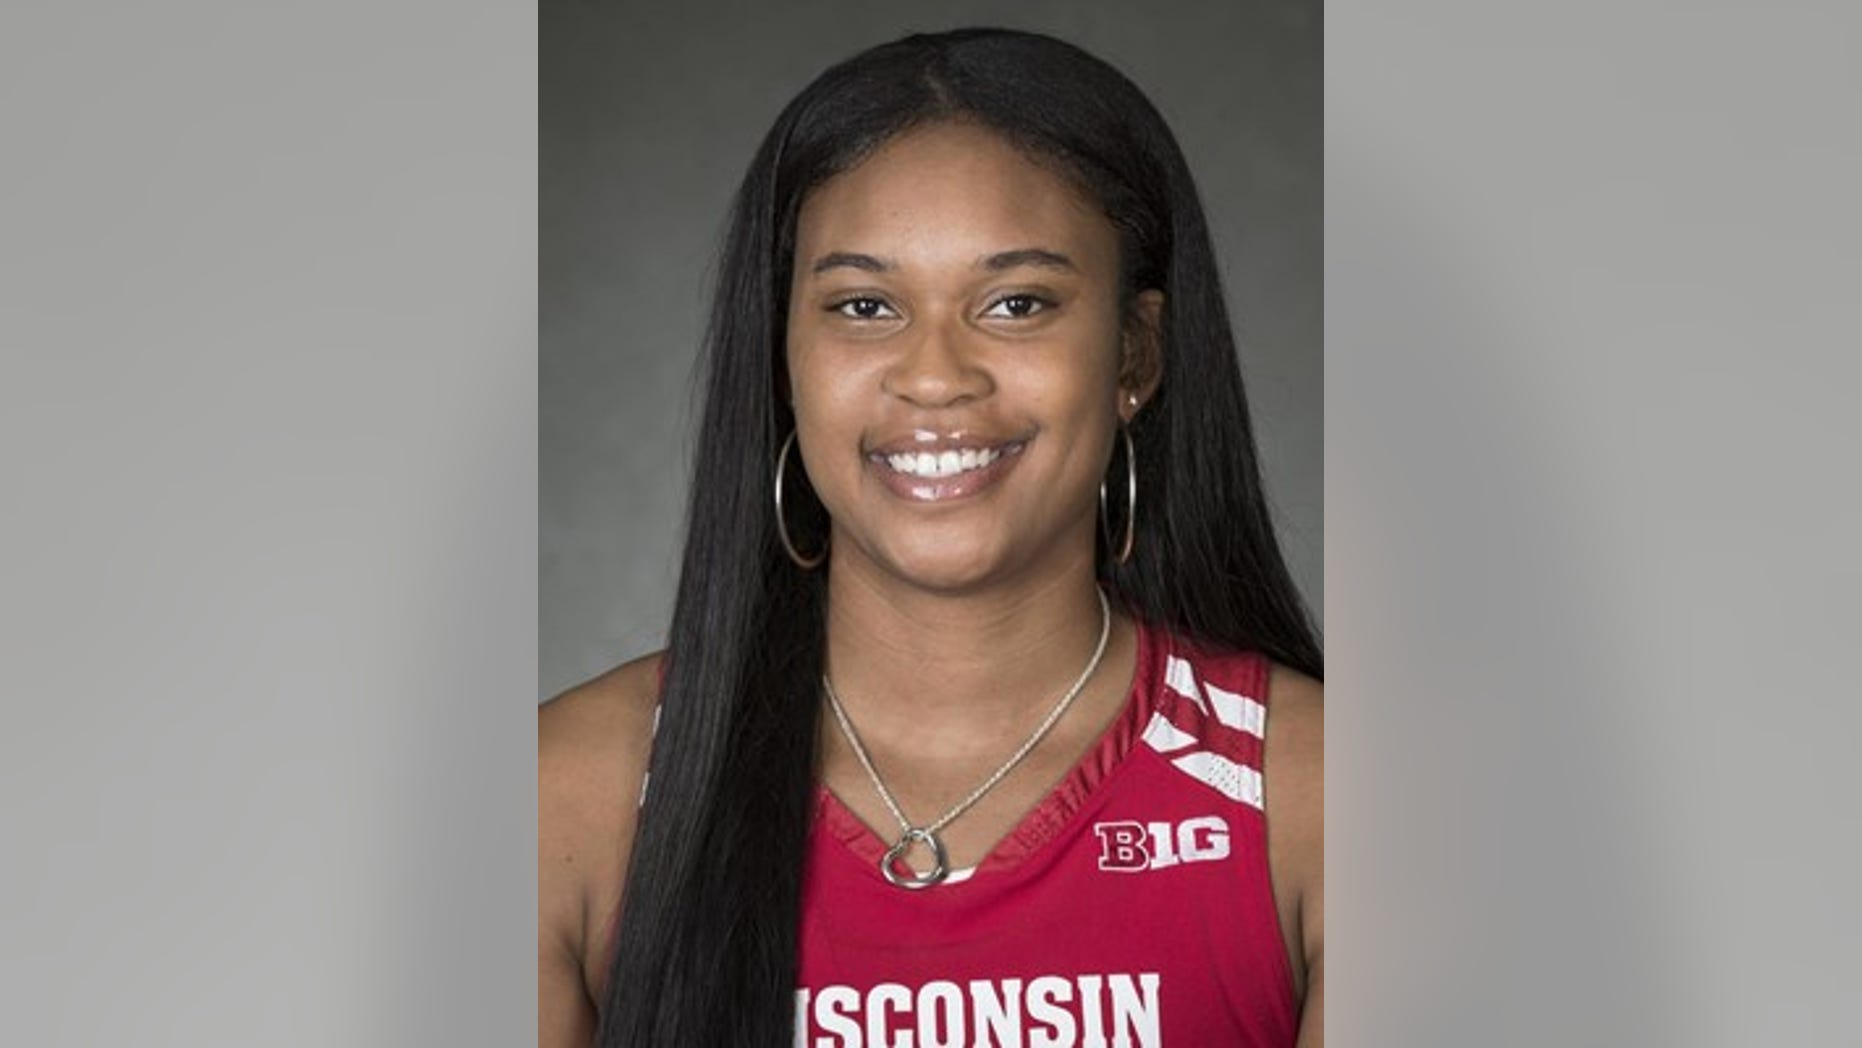 Marsha Howard, a basketball player at the University of Wisconsin, has been sitting during the national anthem. (Wisconsin Badgers website)